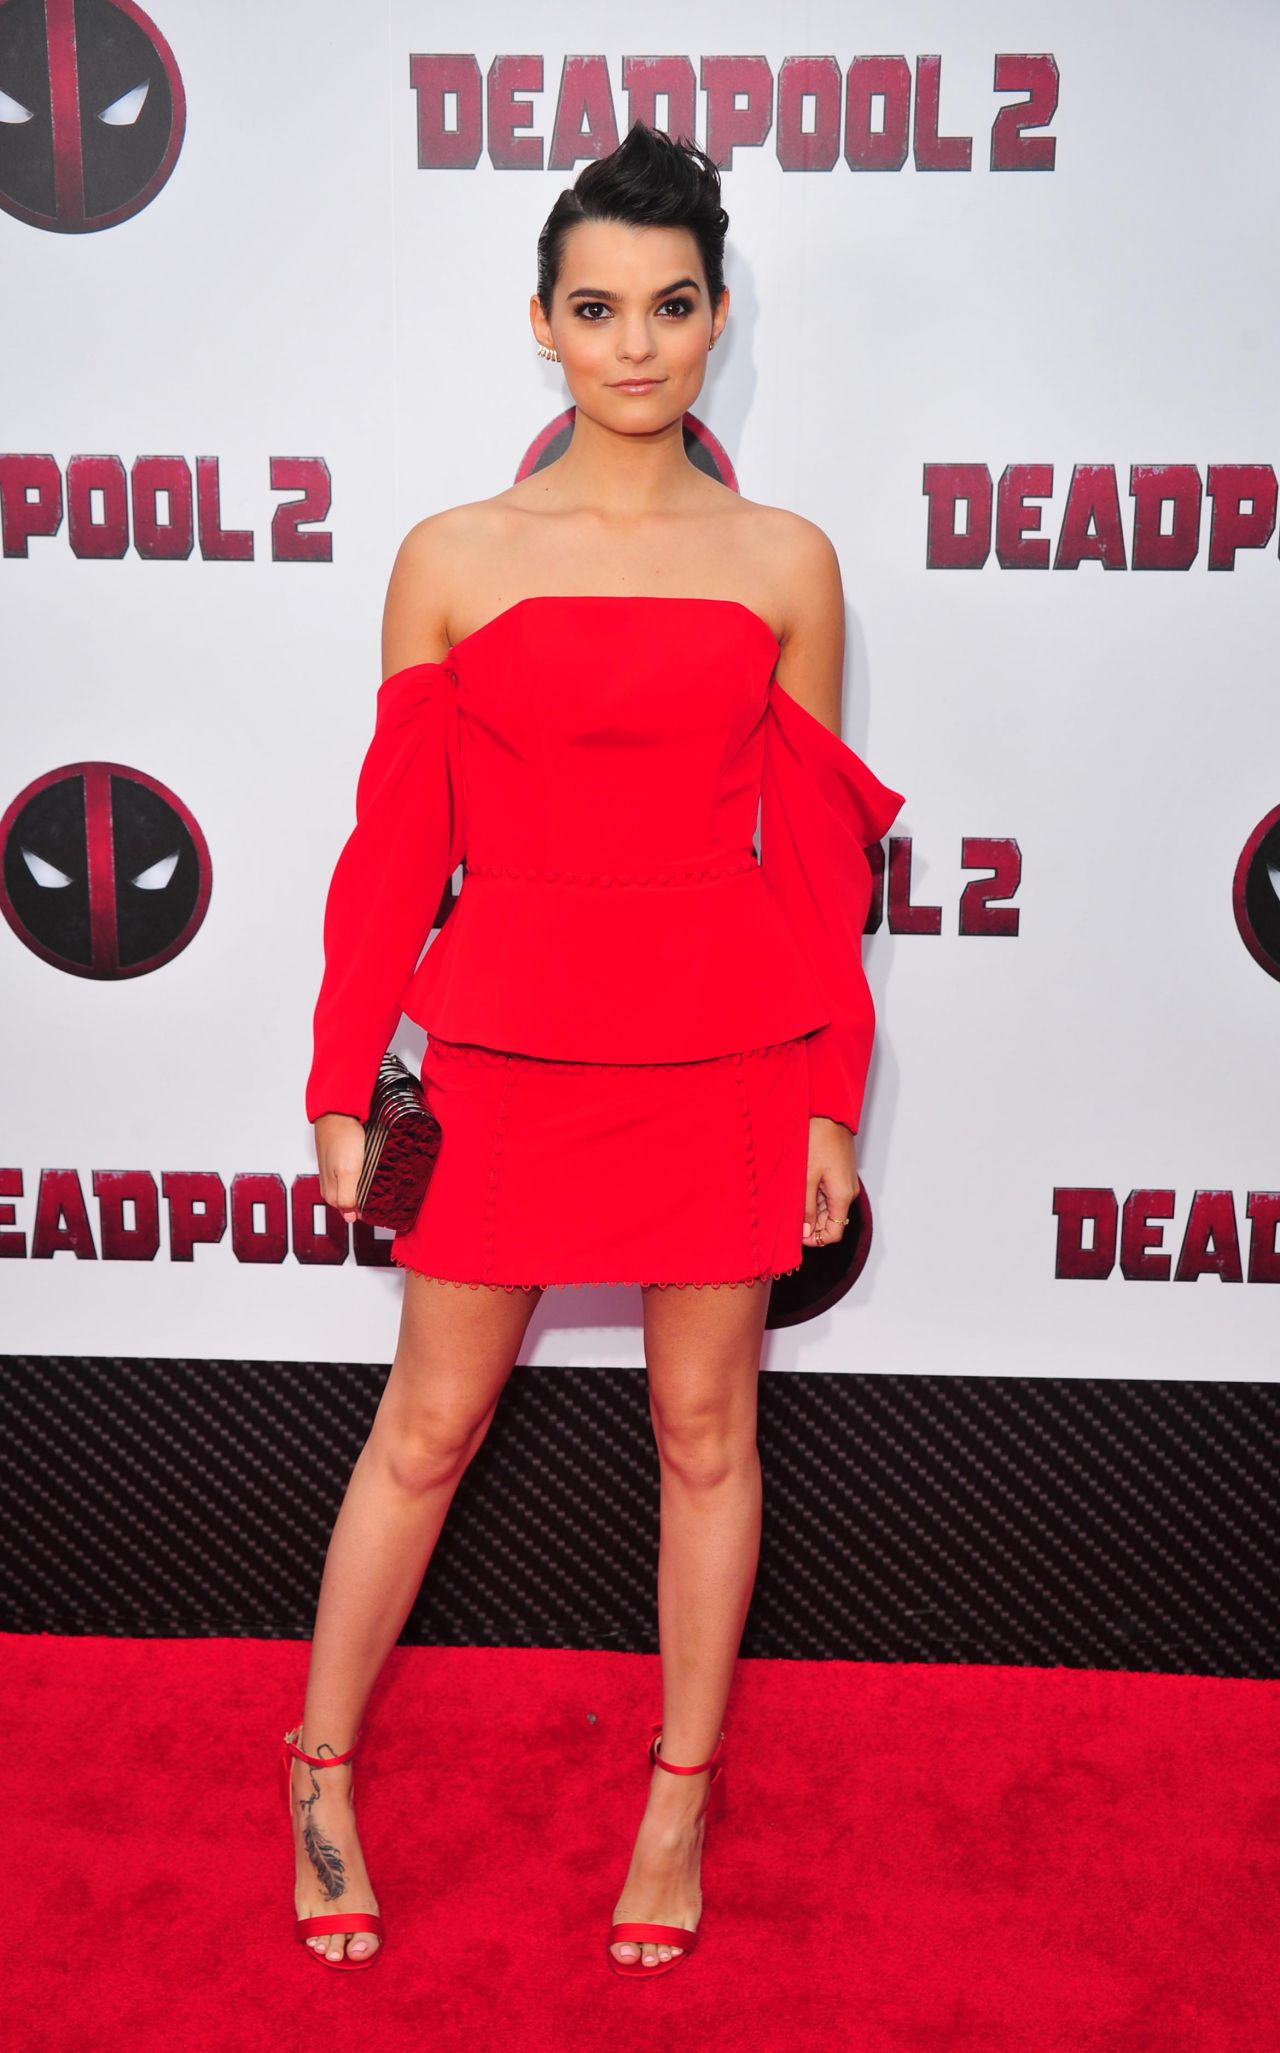 Celebrity deadpool list 2019